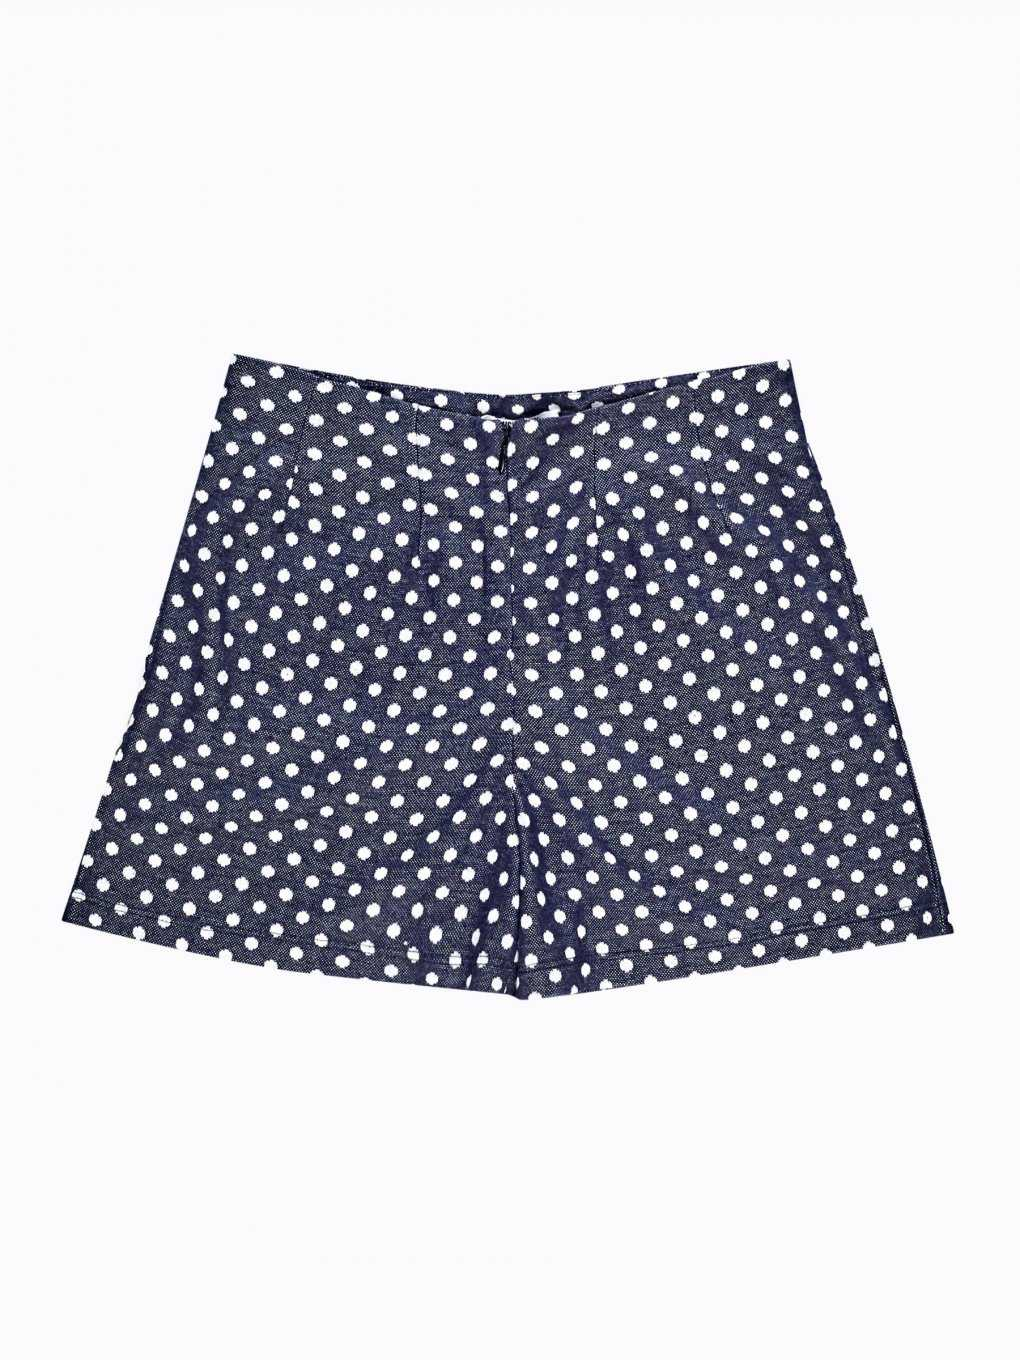 Polka dot regular shorts